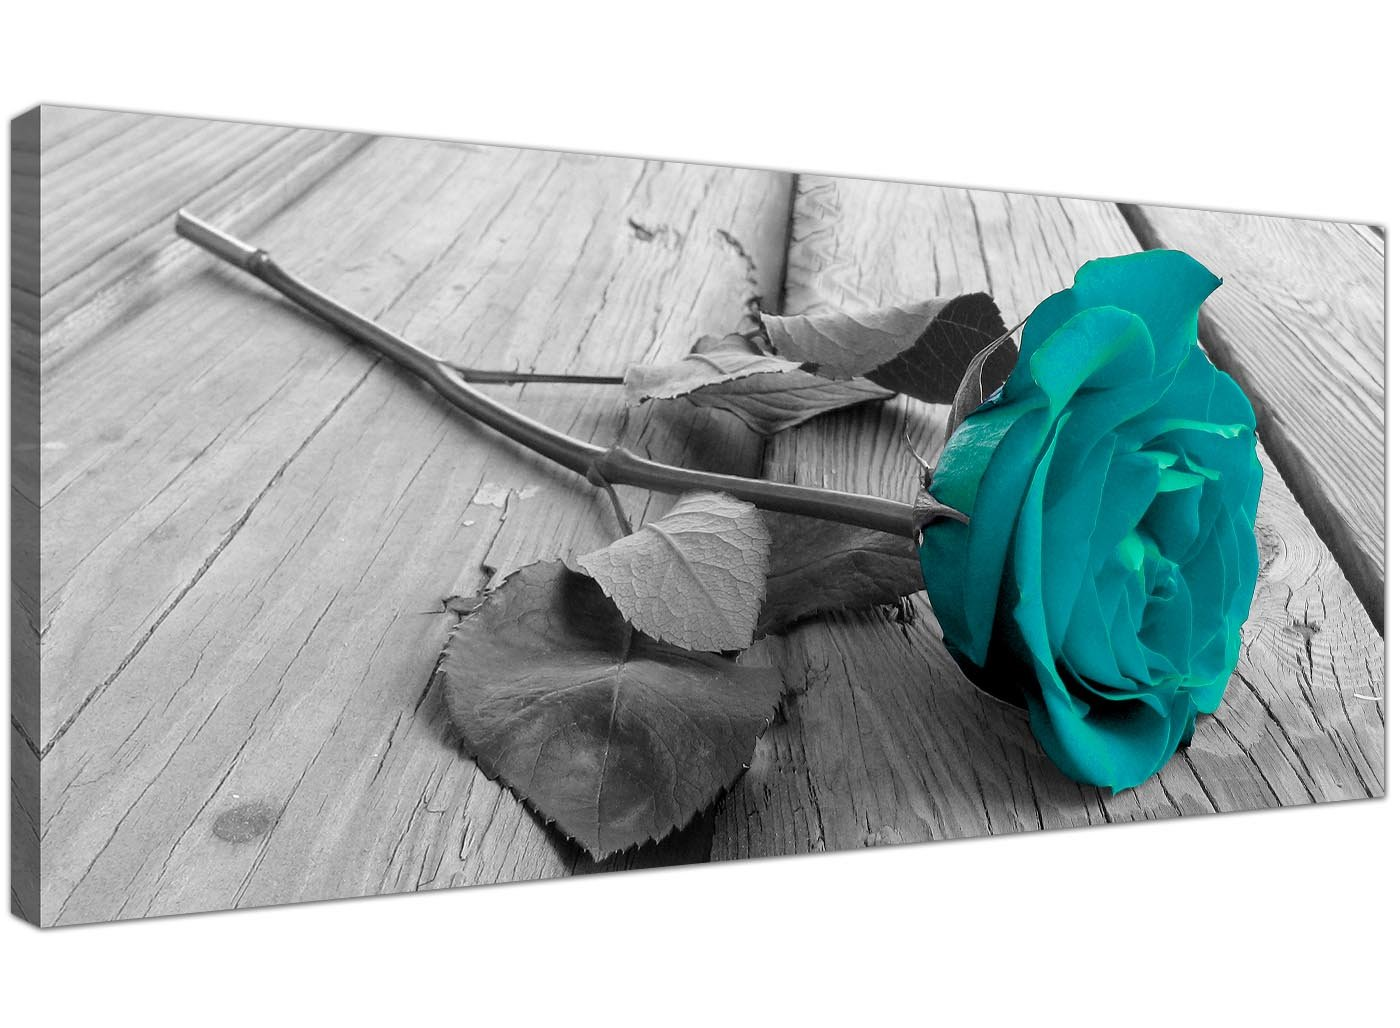 Modern Black And White Canvas Wall Art Of A Teal Rose Flower   Large Floral  Canvas Pictures   1037   Wallfillers®: Amazon.co.uk: Kitchen U0026 Home